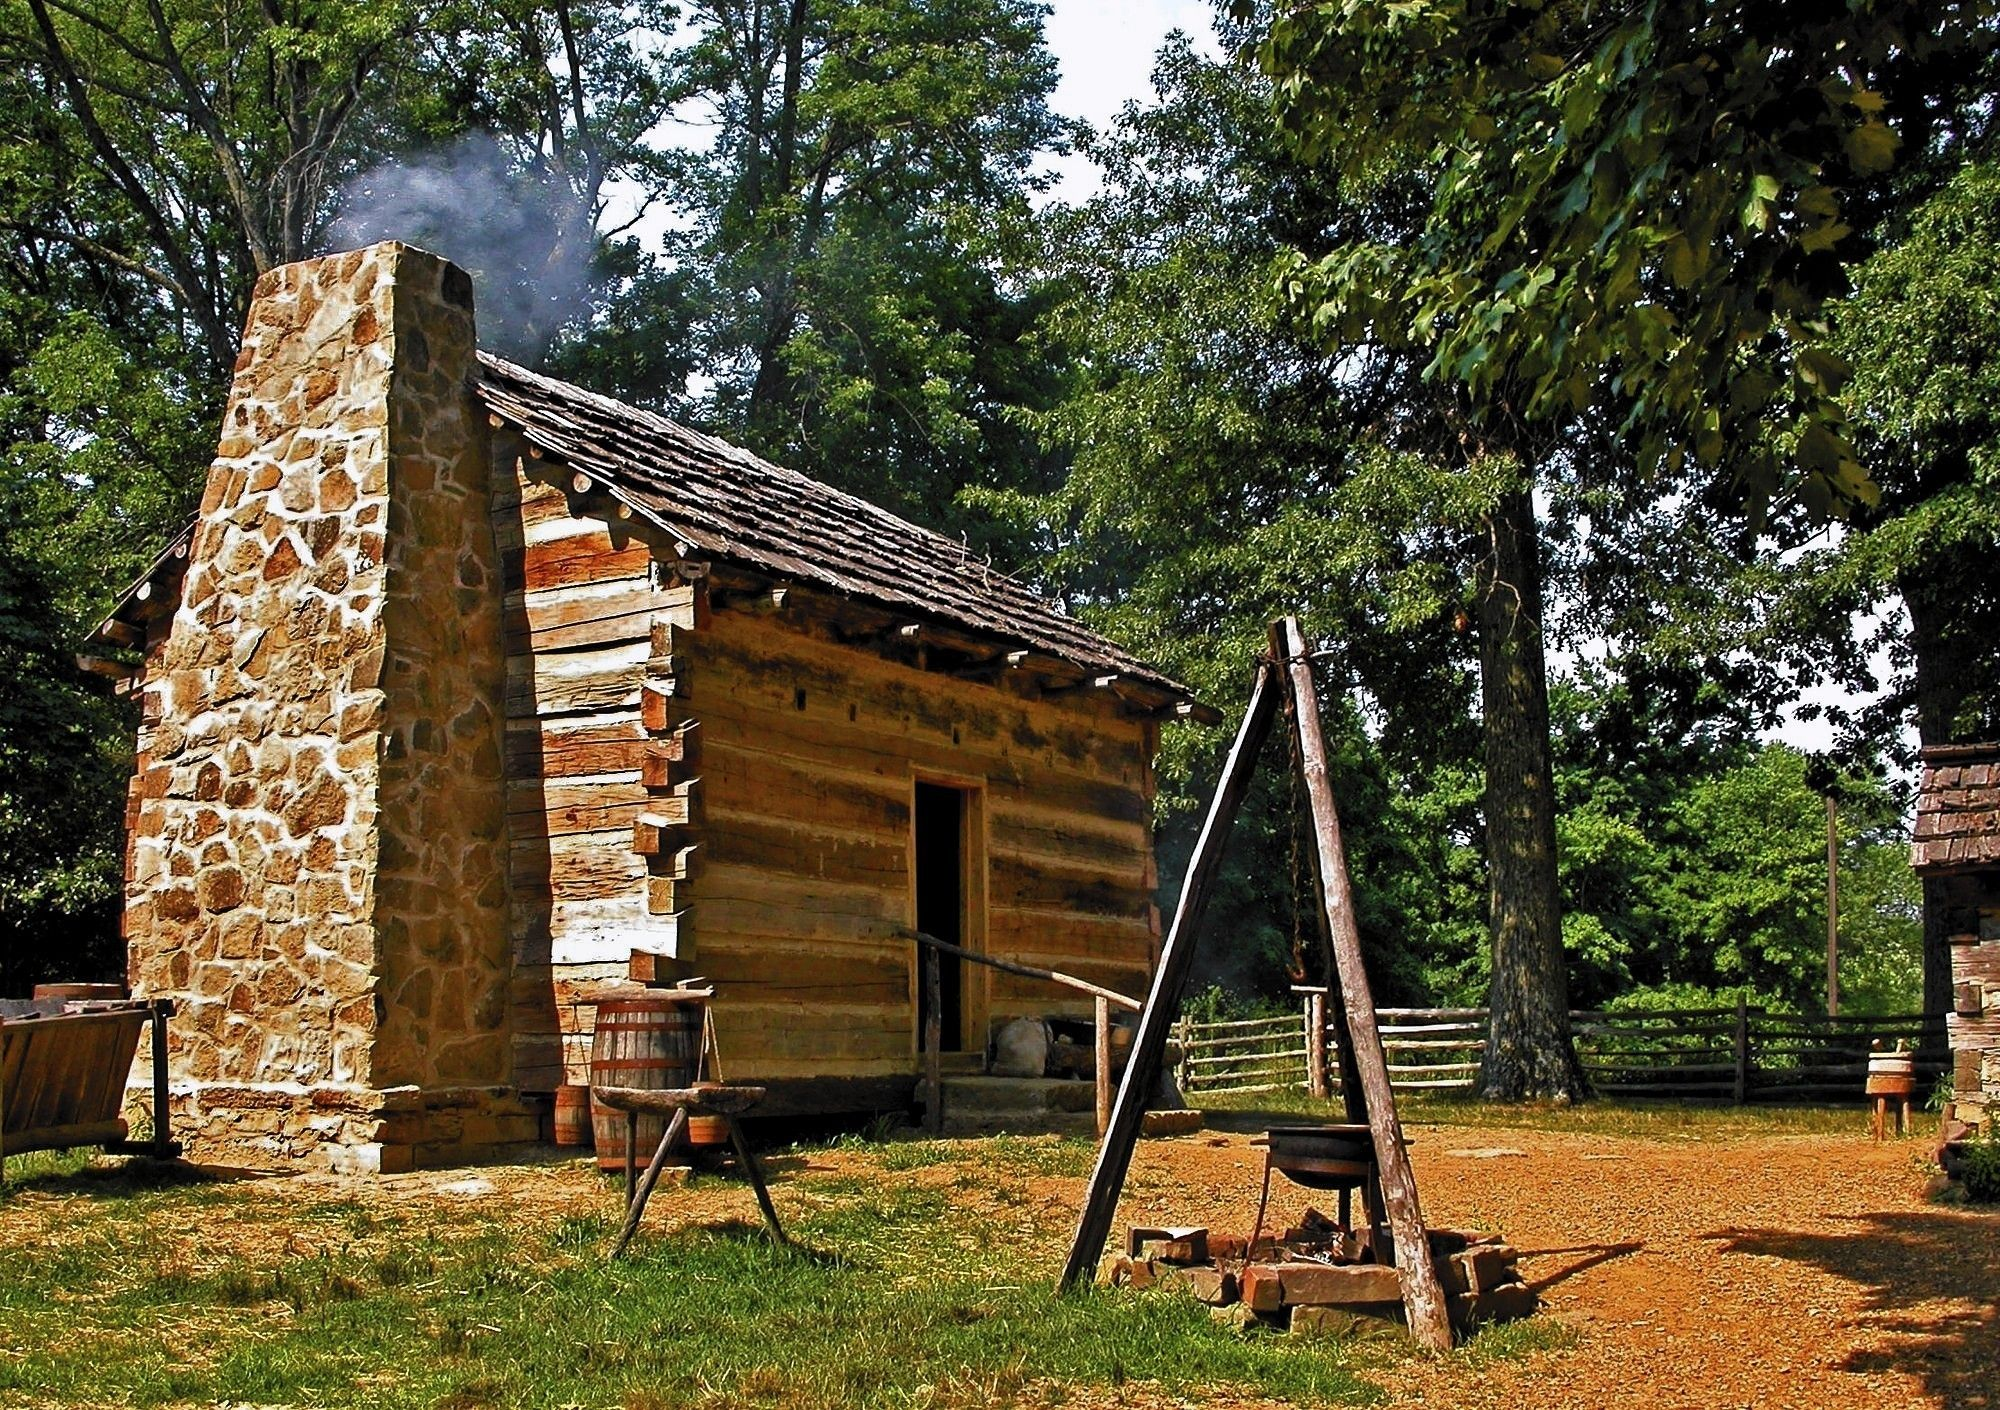 Traveling to explore Lincoln's Indiana boyhood Best